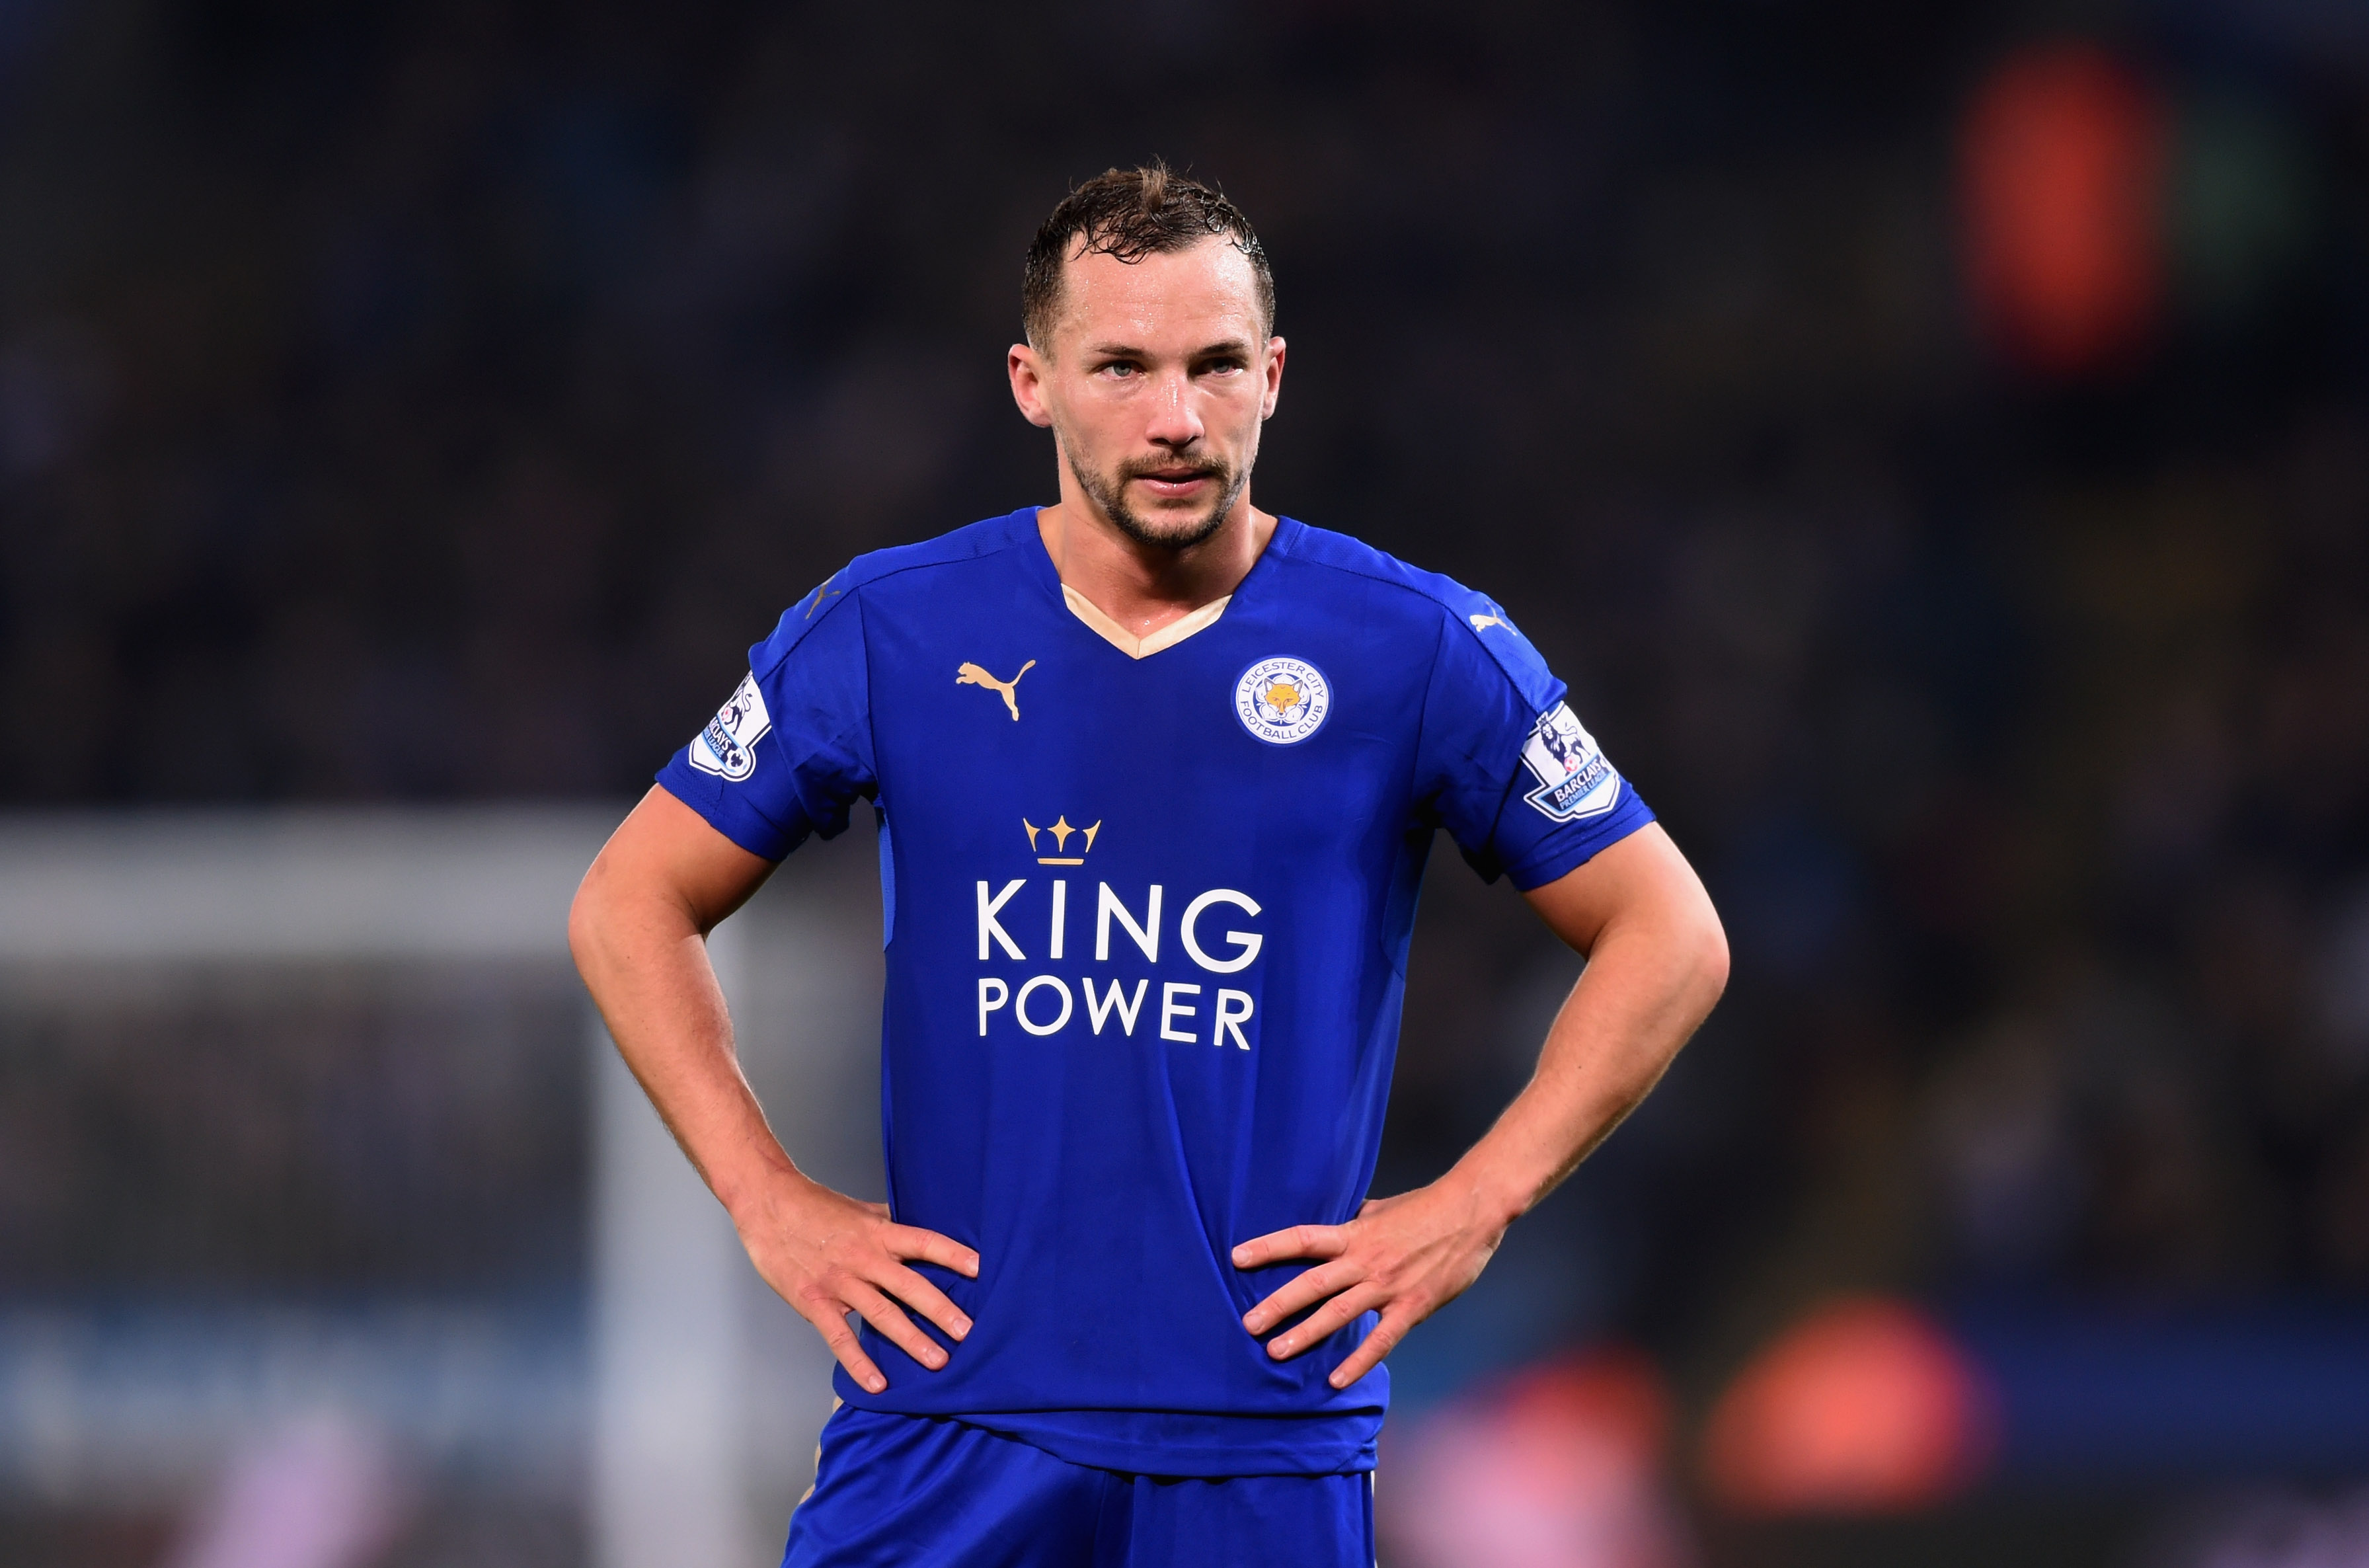 Why Liverpool won't make a transfer move for Leicester City midfielder Danny Drinkwater